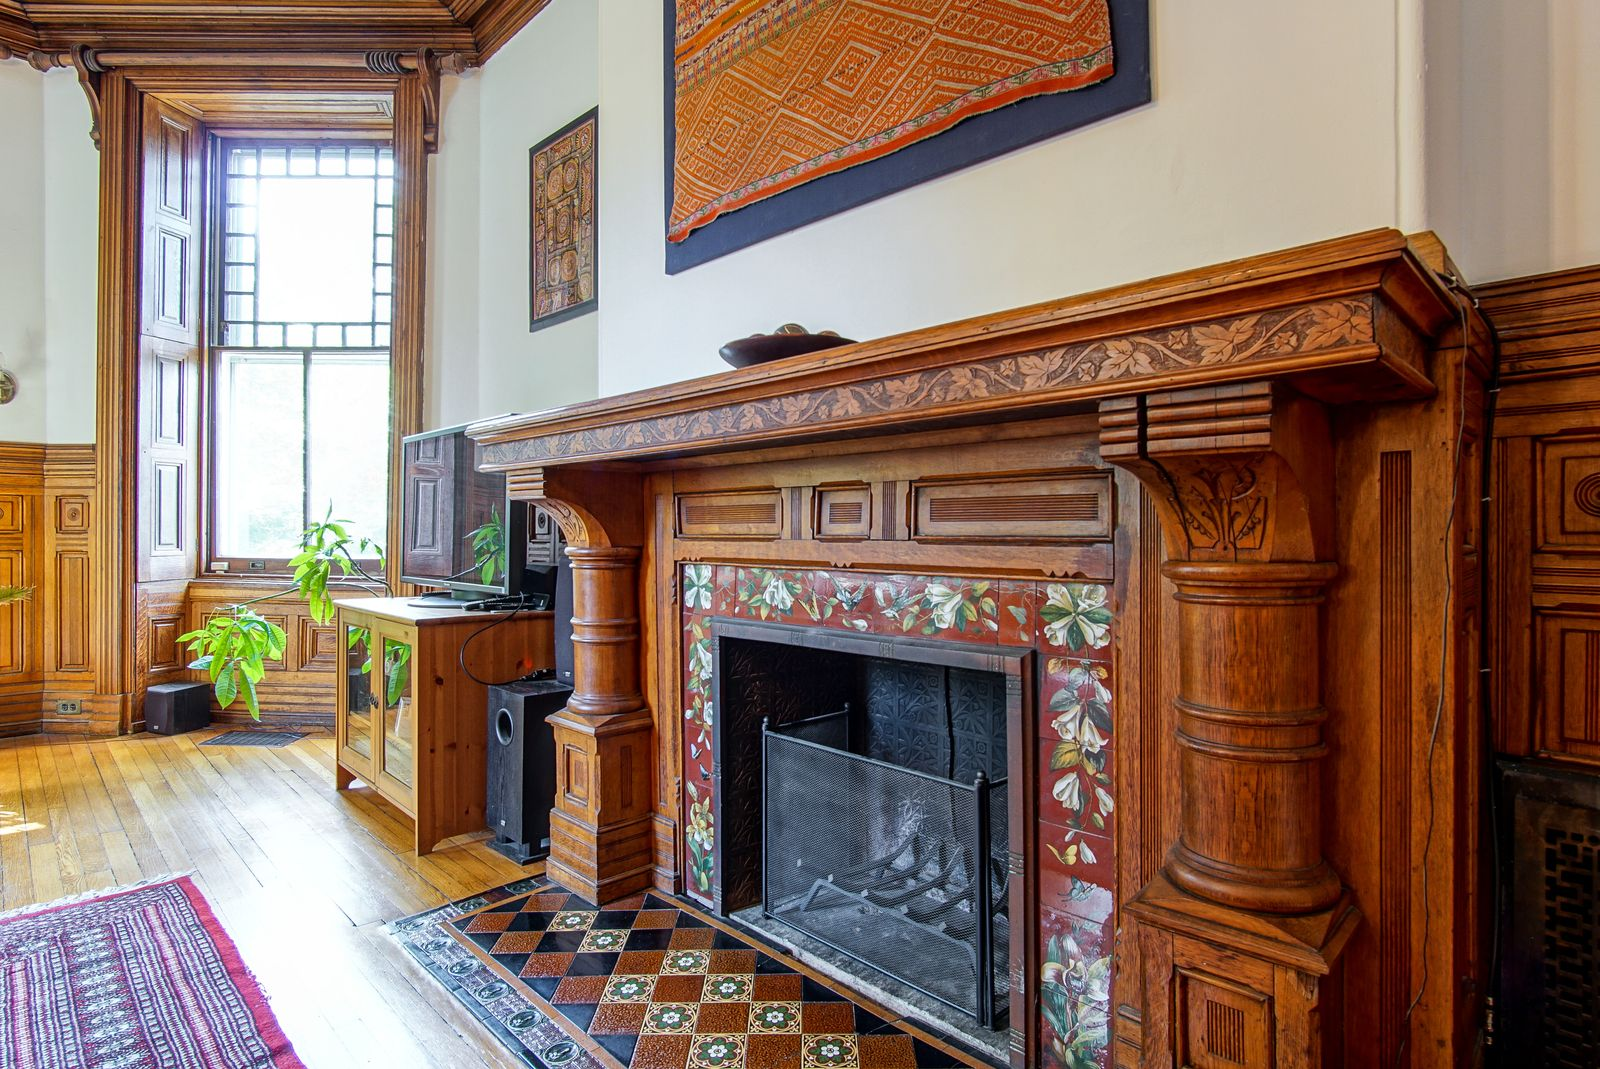 A closeup shot of a fireplace with lovely tiling.